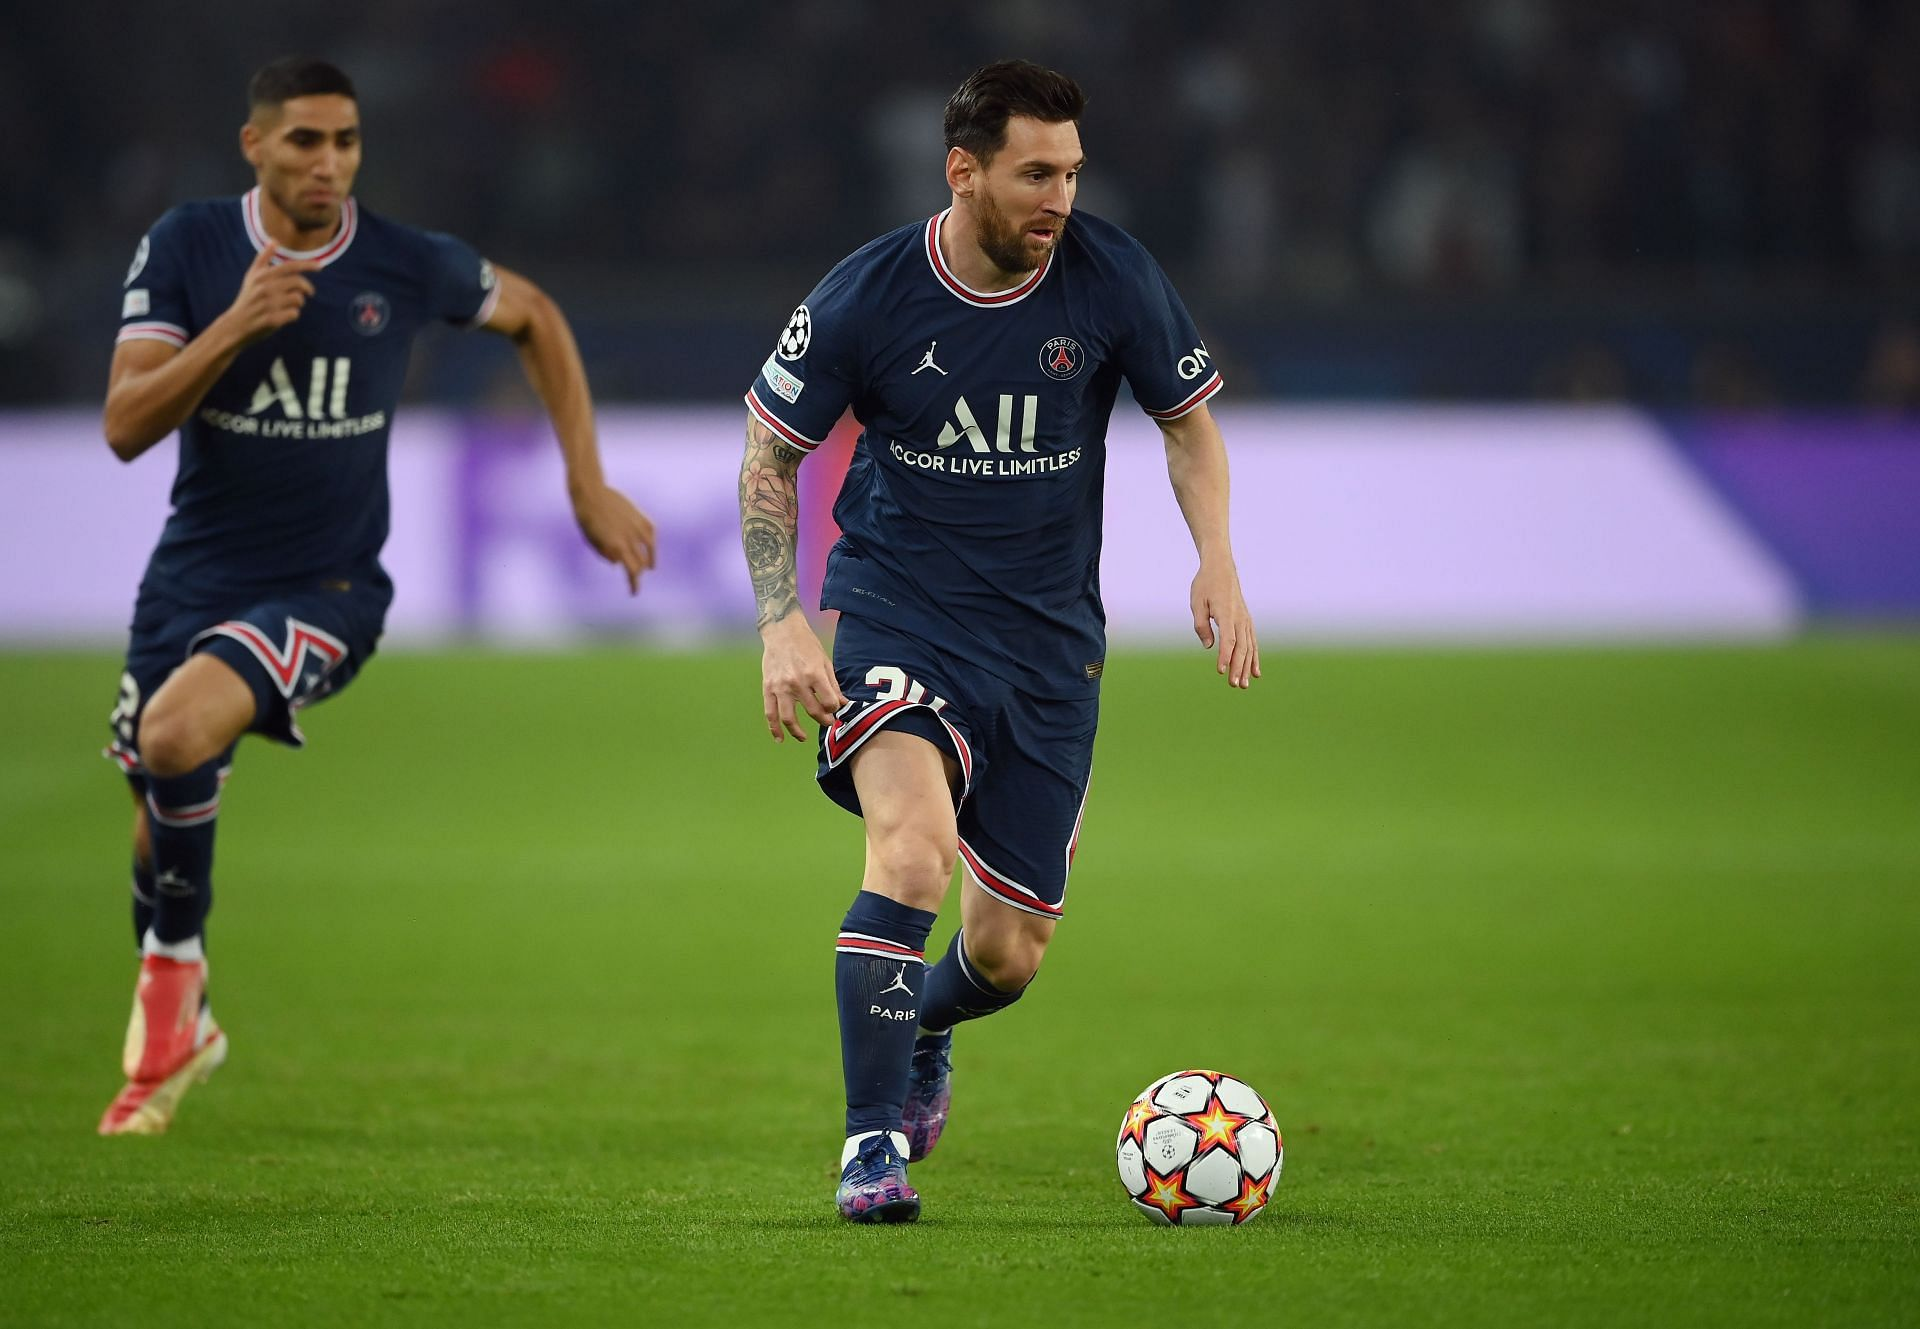 Lionel Messi is contemplating cutting ties with PSG.